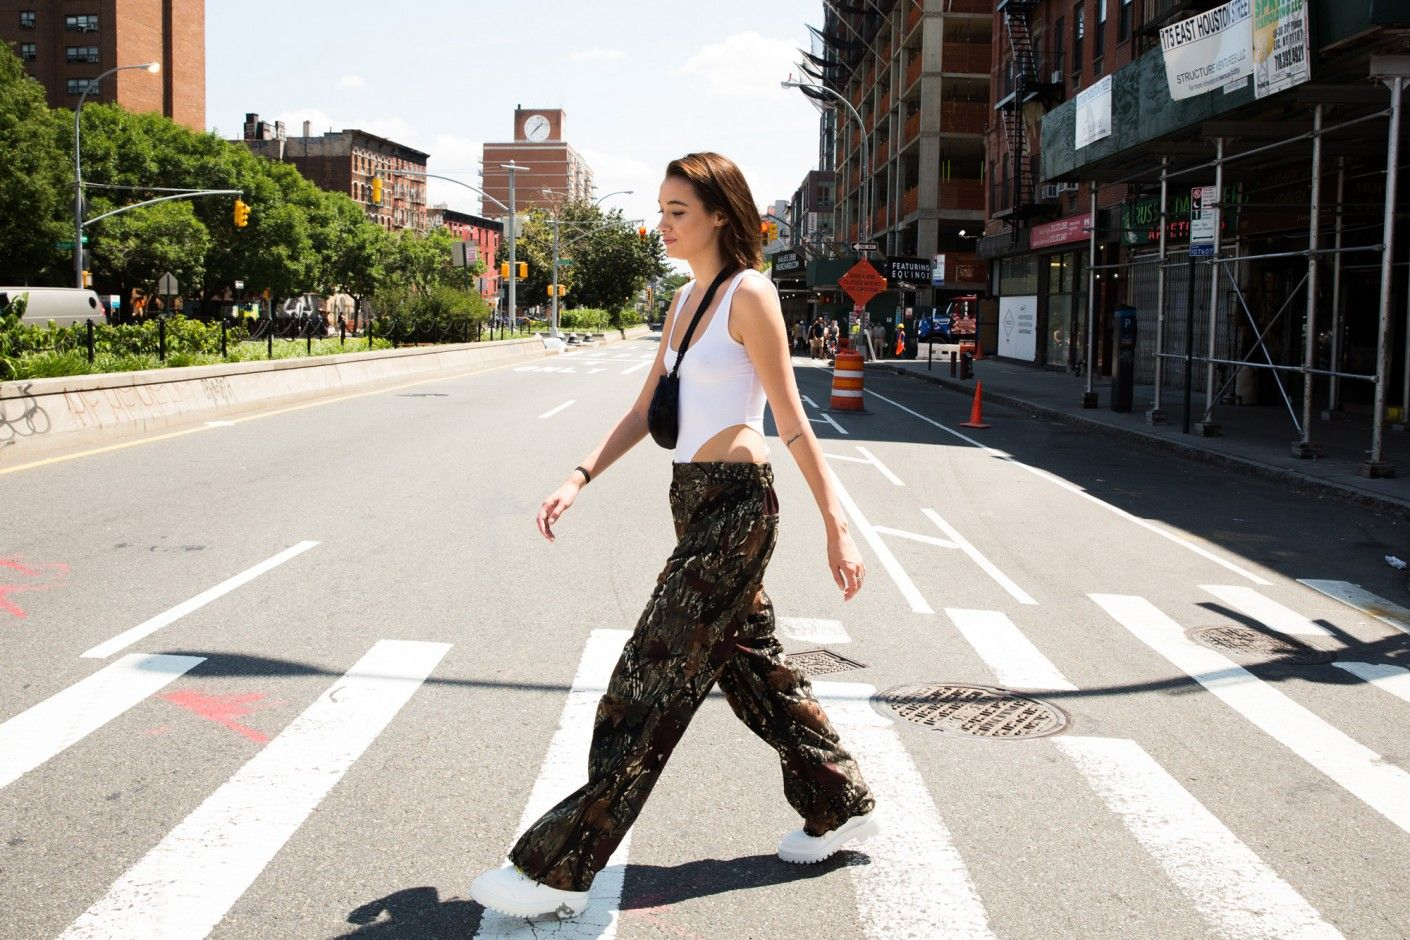 Singer Olivia O'Brien Talks Starting in the Music Industry - Street Style | Coveteur.com